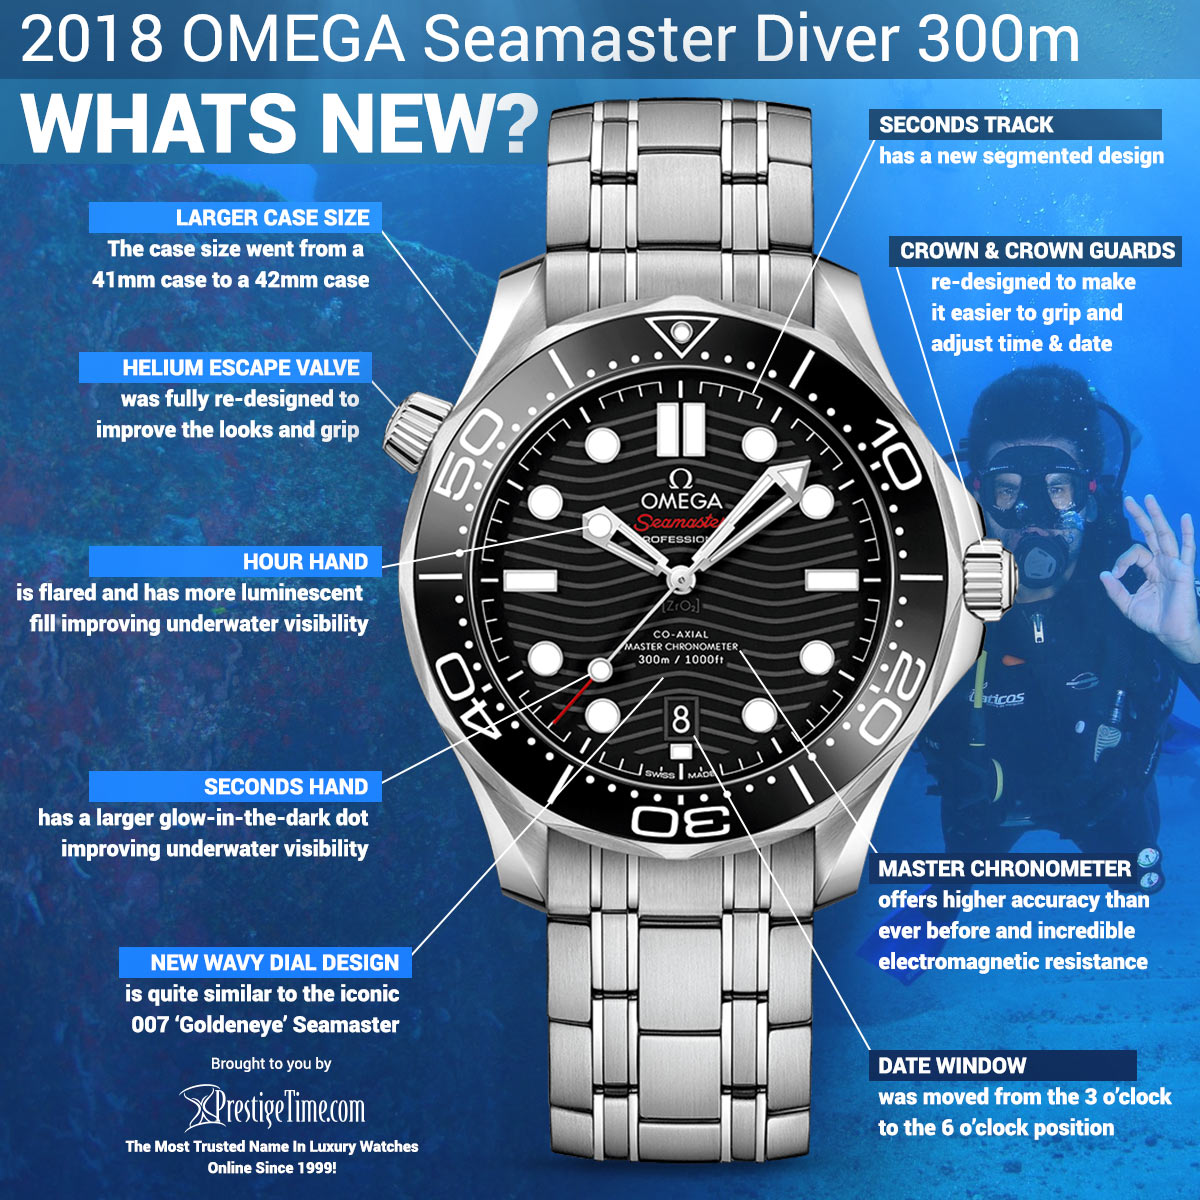 Review of the 2018 Seamaster Diver 300m Master Chronometer